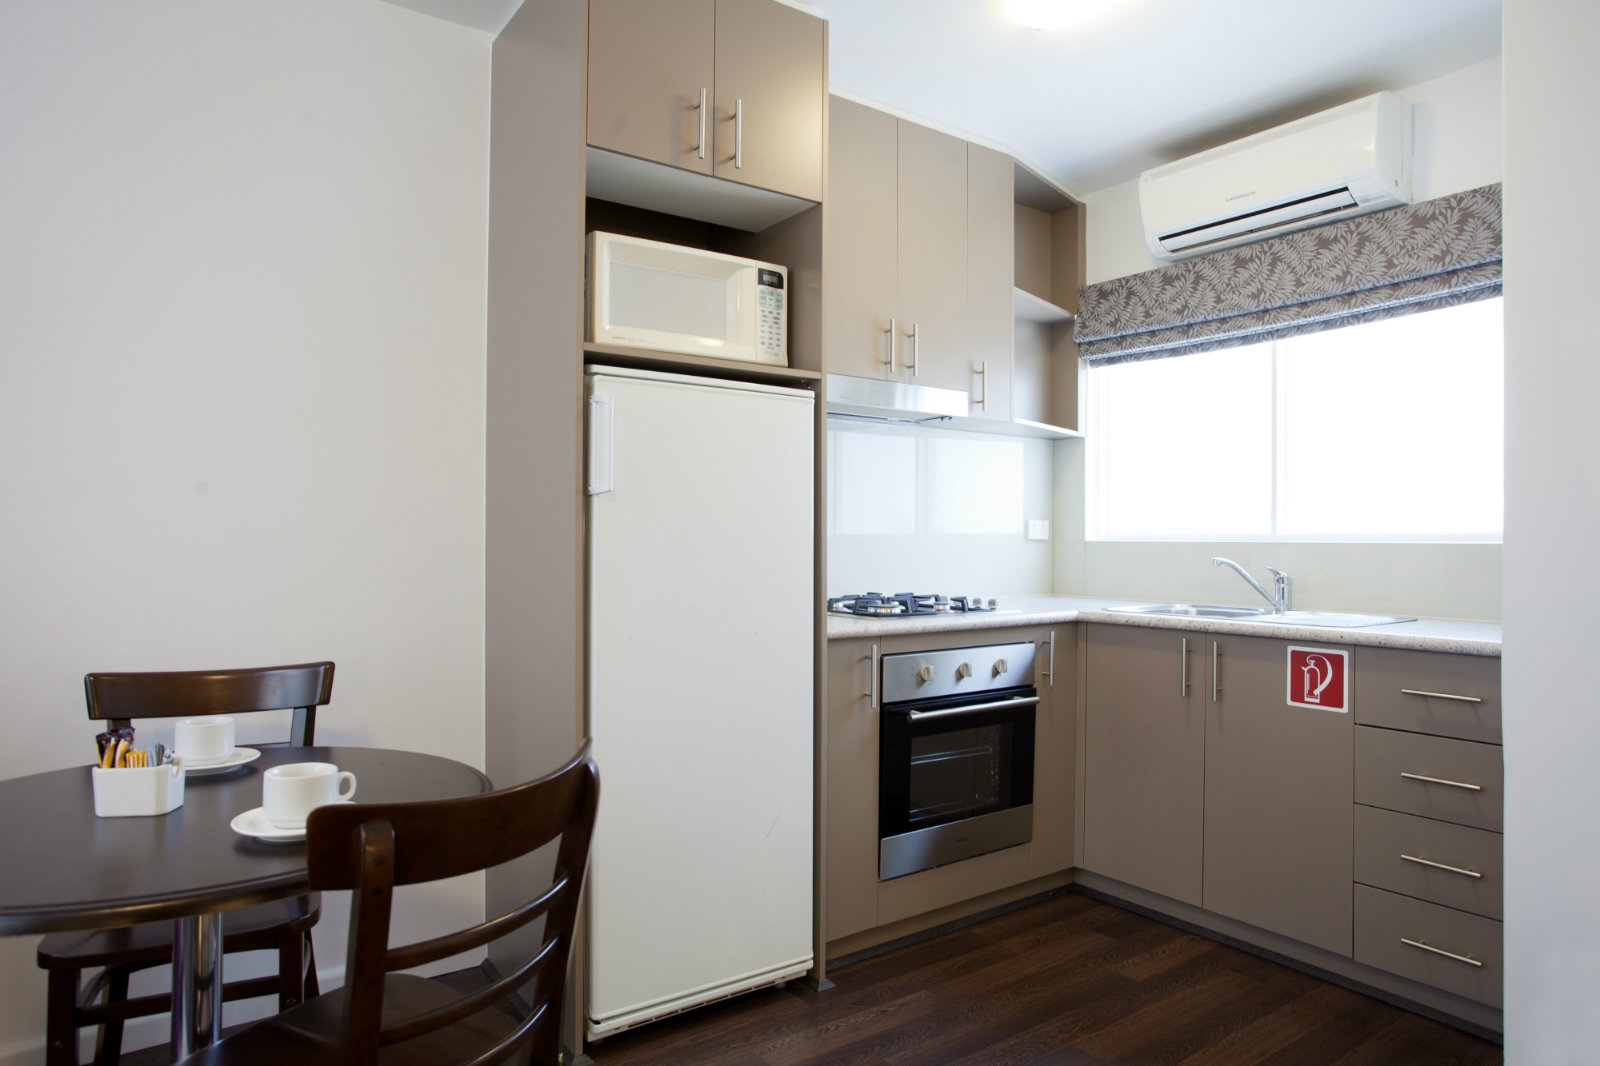 Apartments_kitchen_resize